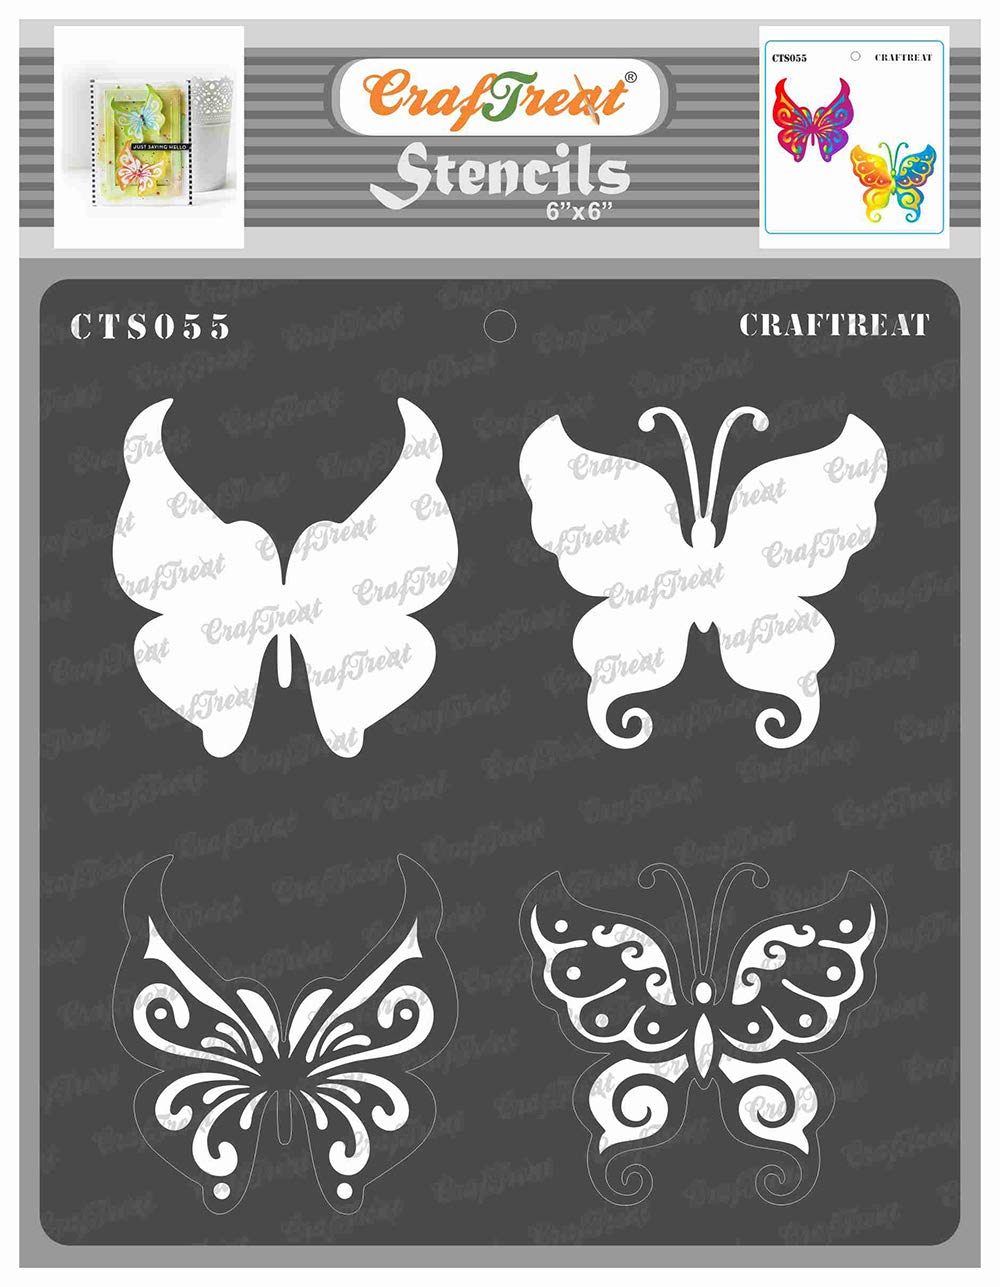 CrafTreat Flower Basket Wall Stencils for Painting Large Pattern Reusable DIY Art and Craft Stencils Flower Stencils for Walls 12x12 Inches Best Wishes Flower Bouquet Stencil